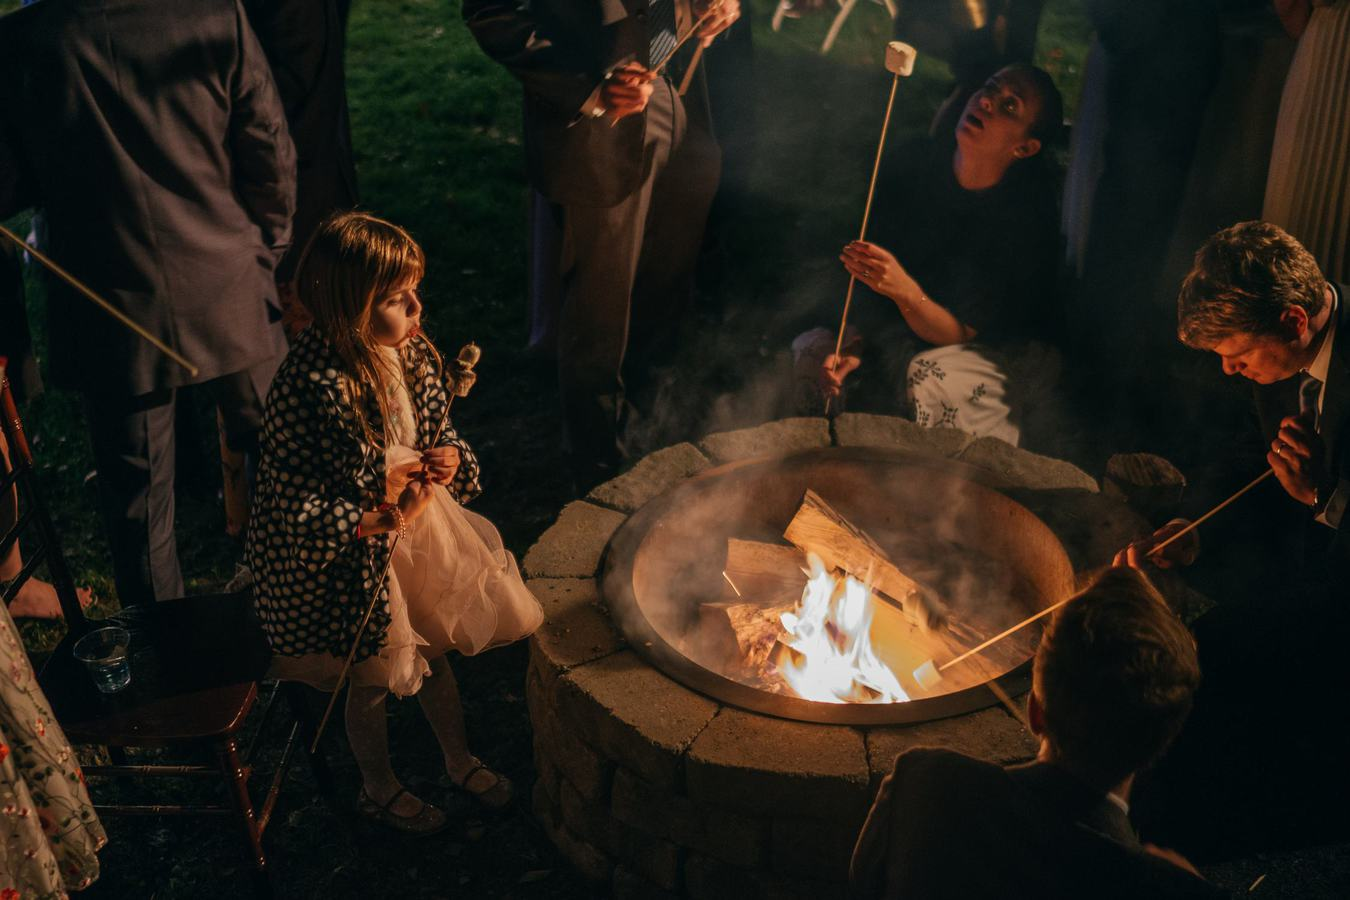 Wedding guests sit around fire pit to make s'mores, and a little girl blows on her marshmallow to cool it down after cooking it.